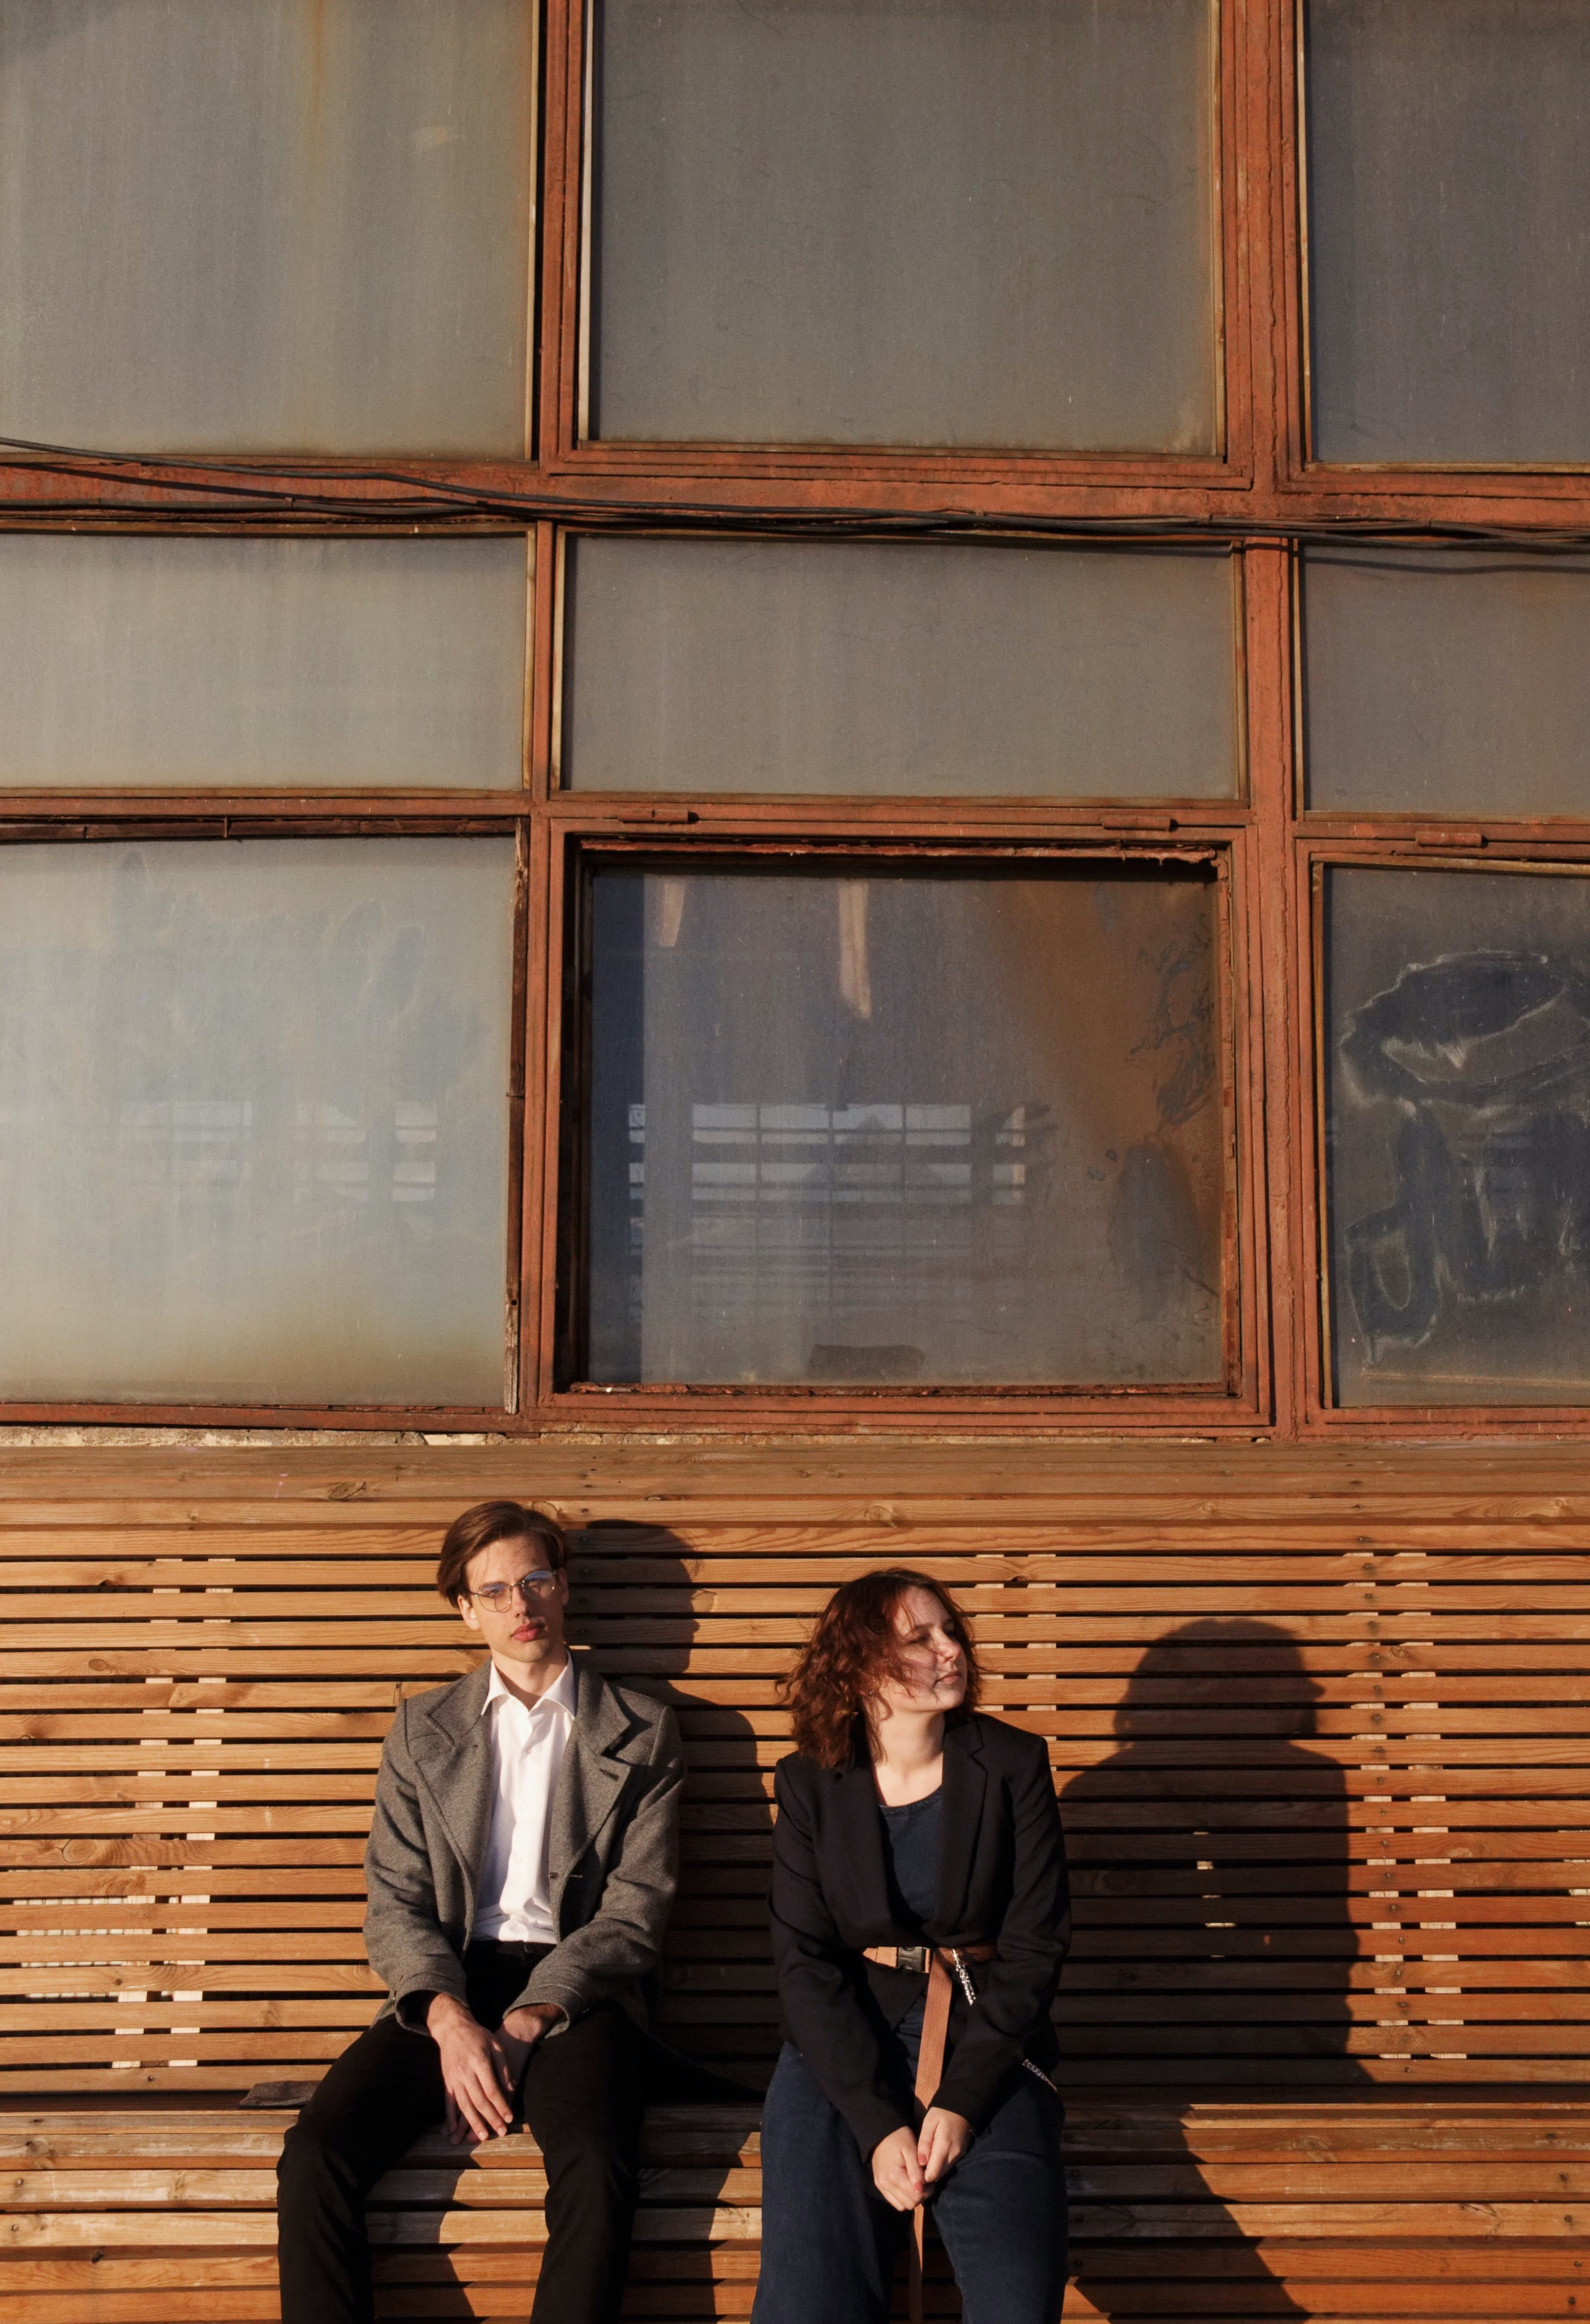 Man and Woman Sitting on Wooden Bench